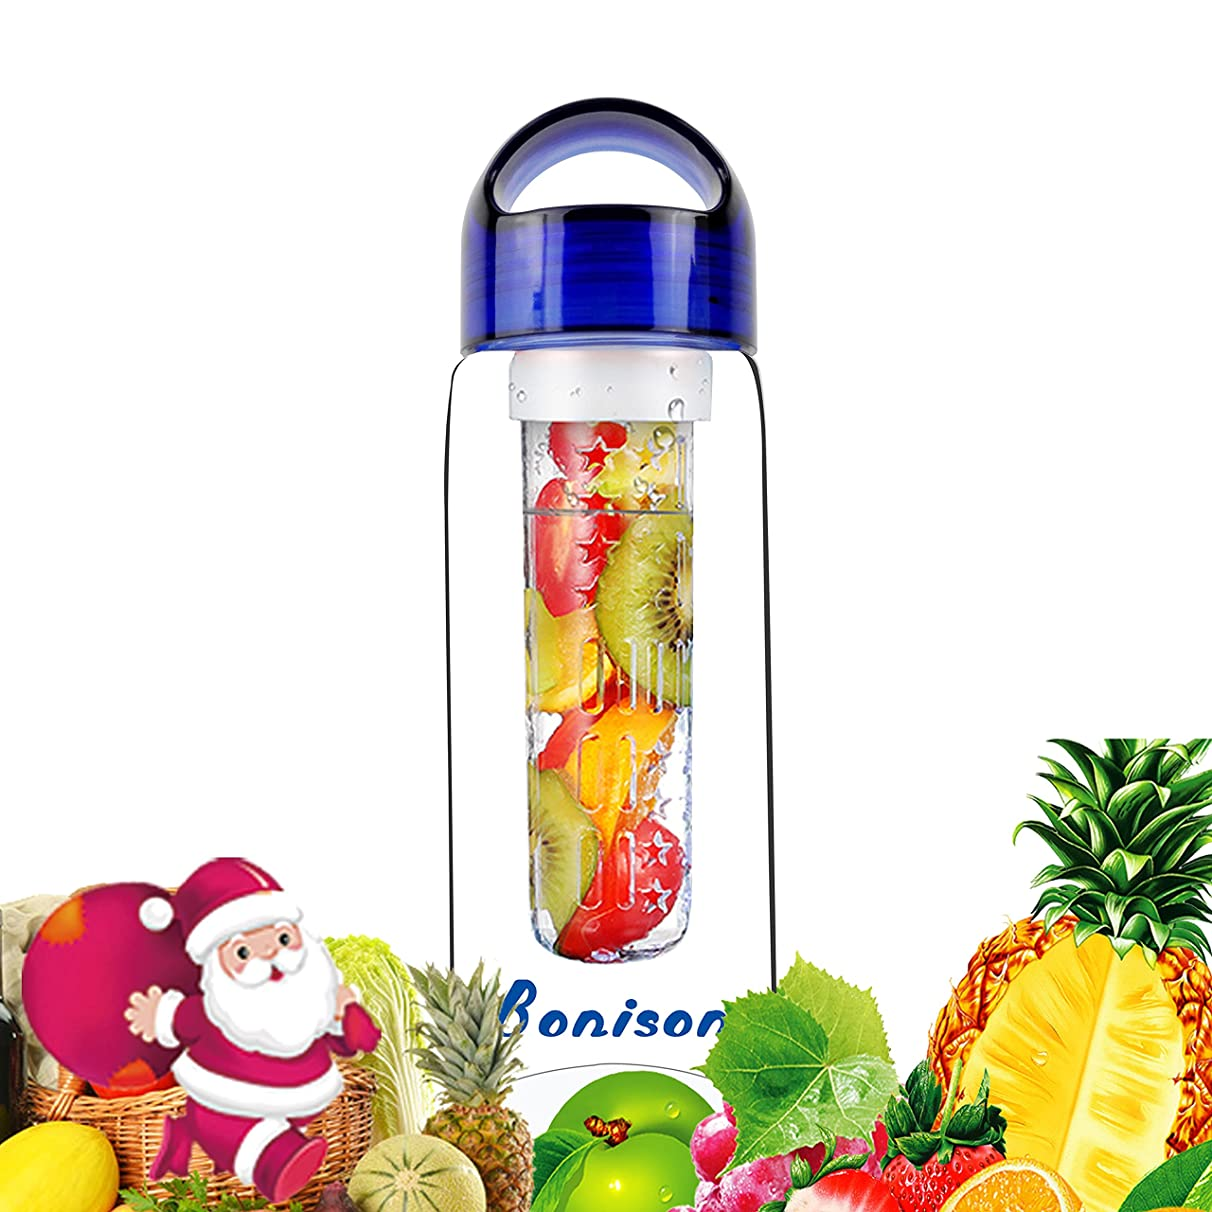 Bonison Sporty Tritan Fruit Infuser Water Bottle,Leak Proof,Trendy Durable with Handle for Fruit,Juice, Iced Tea, Lemonade & Sparkling Beverages (23 Oz)